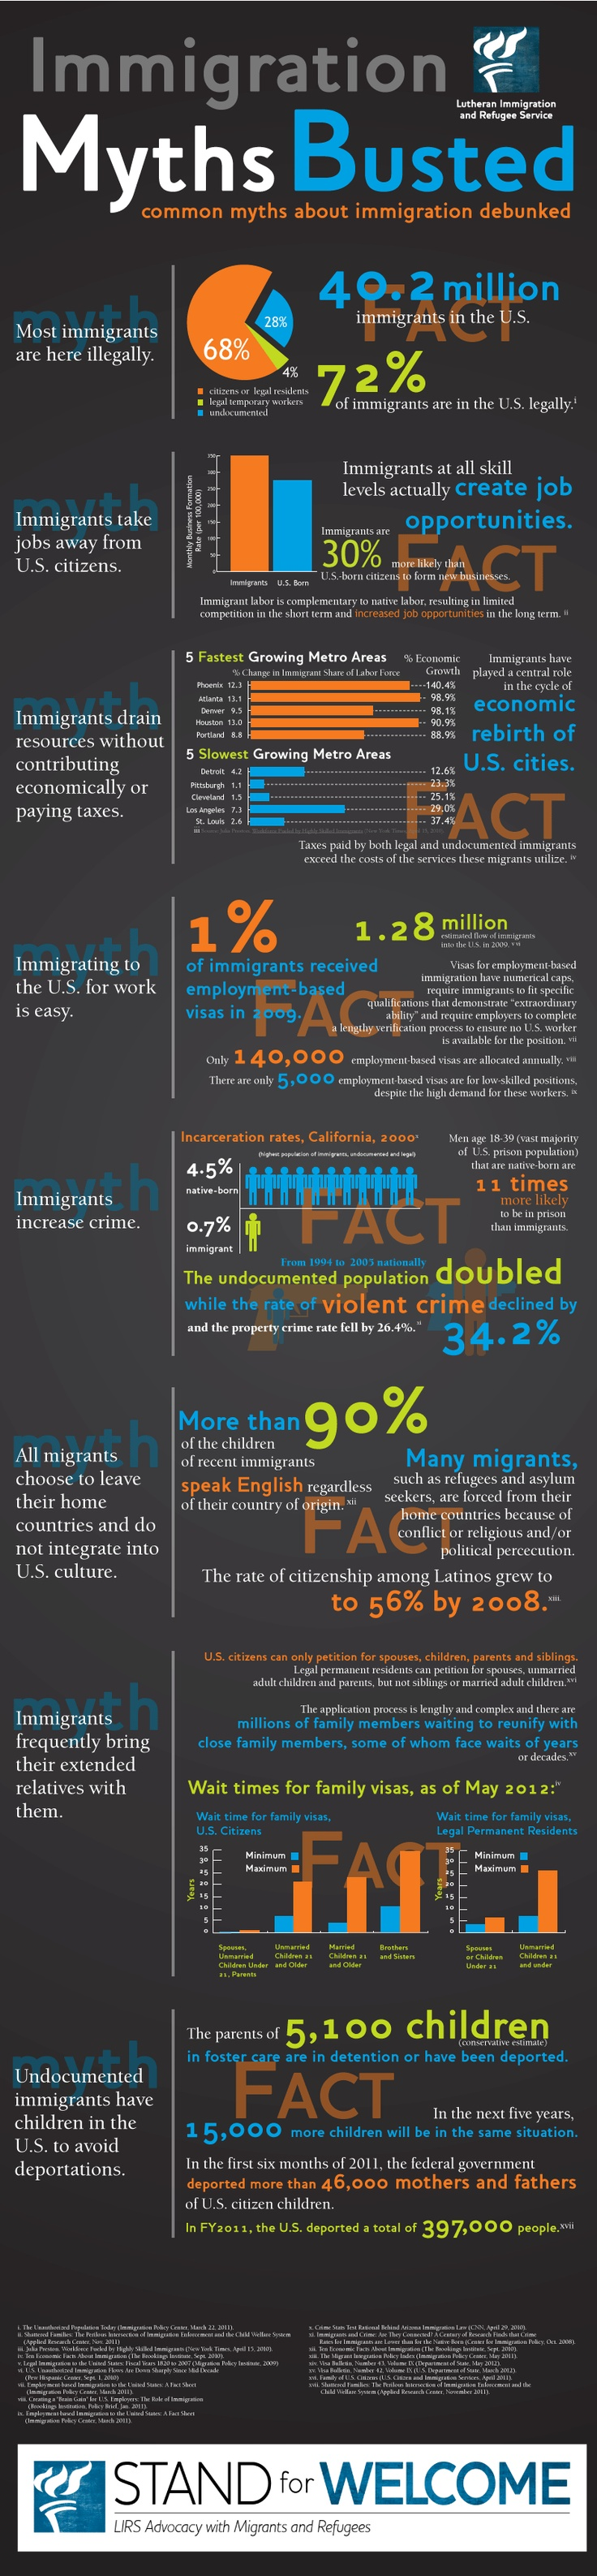 Myths and Realities about Immigration in the Past and Present